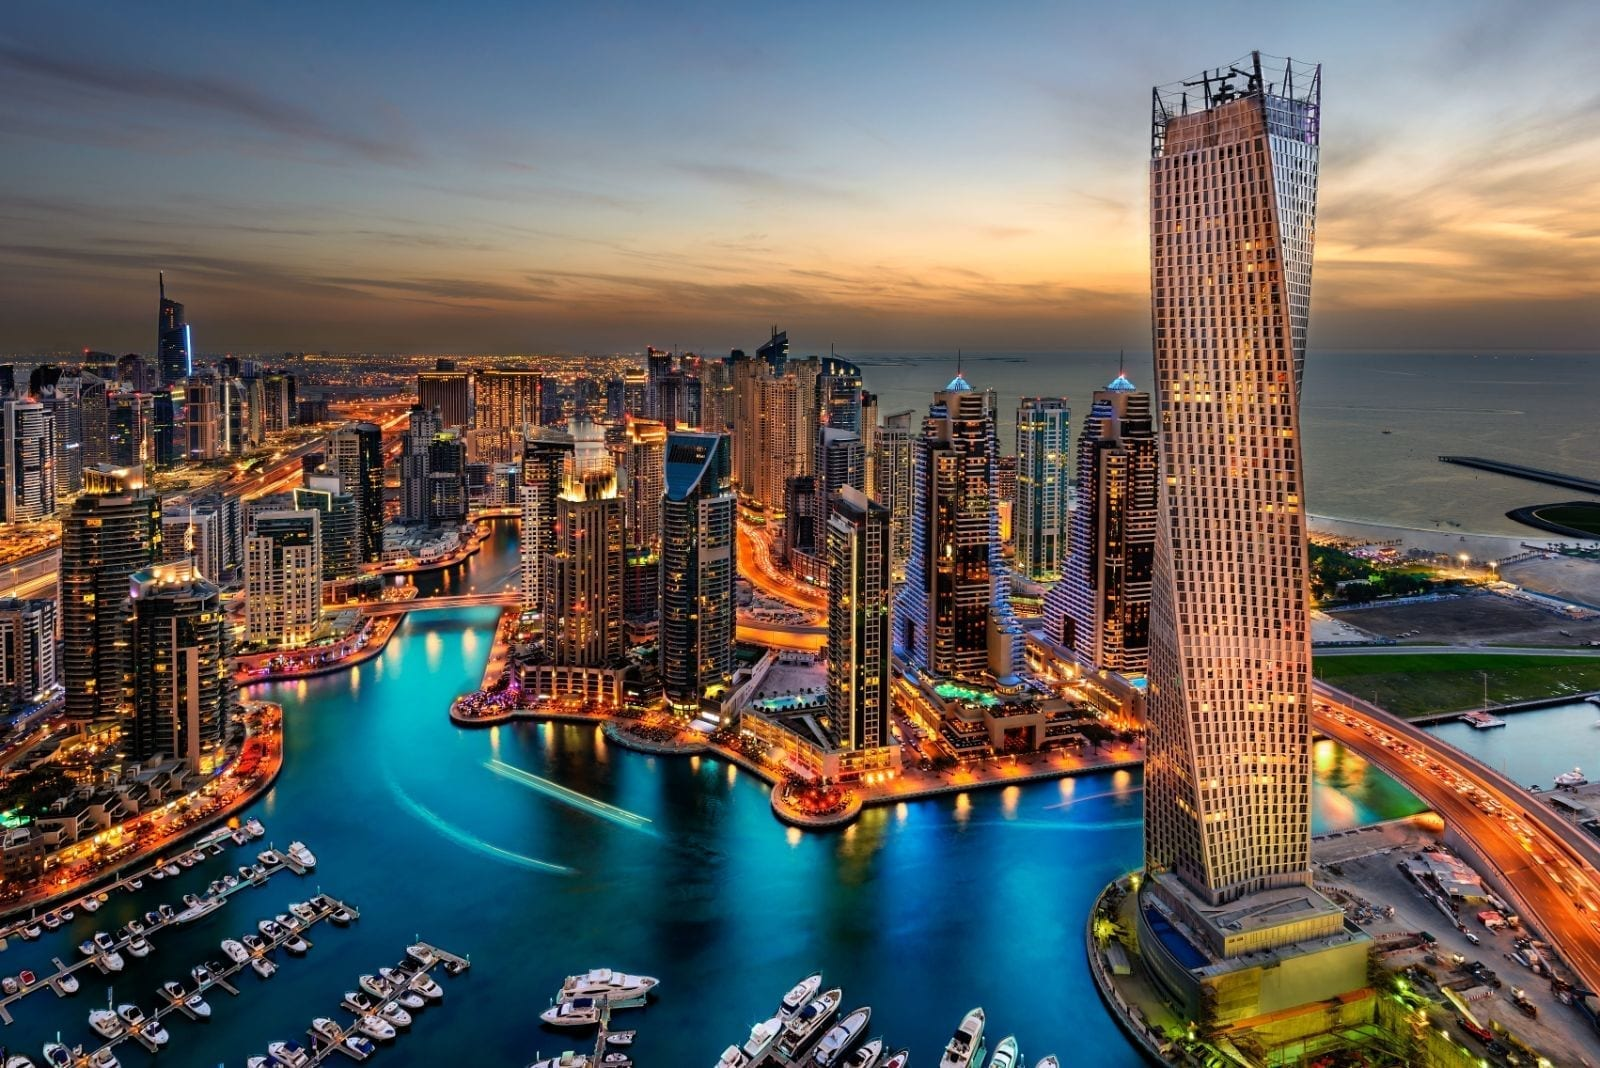 Visit the Marina during your Dubai holiday